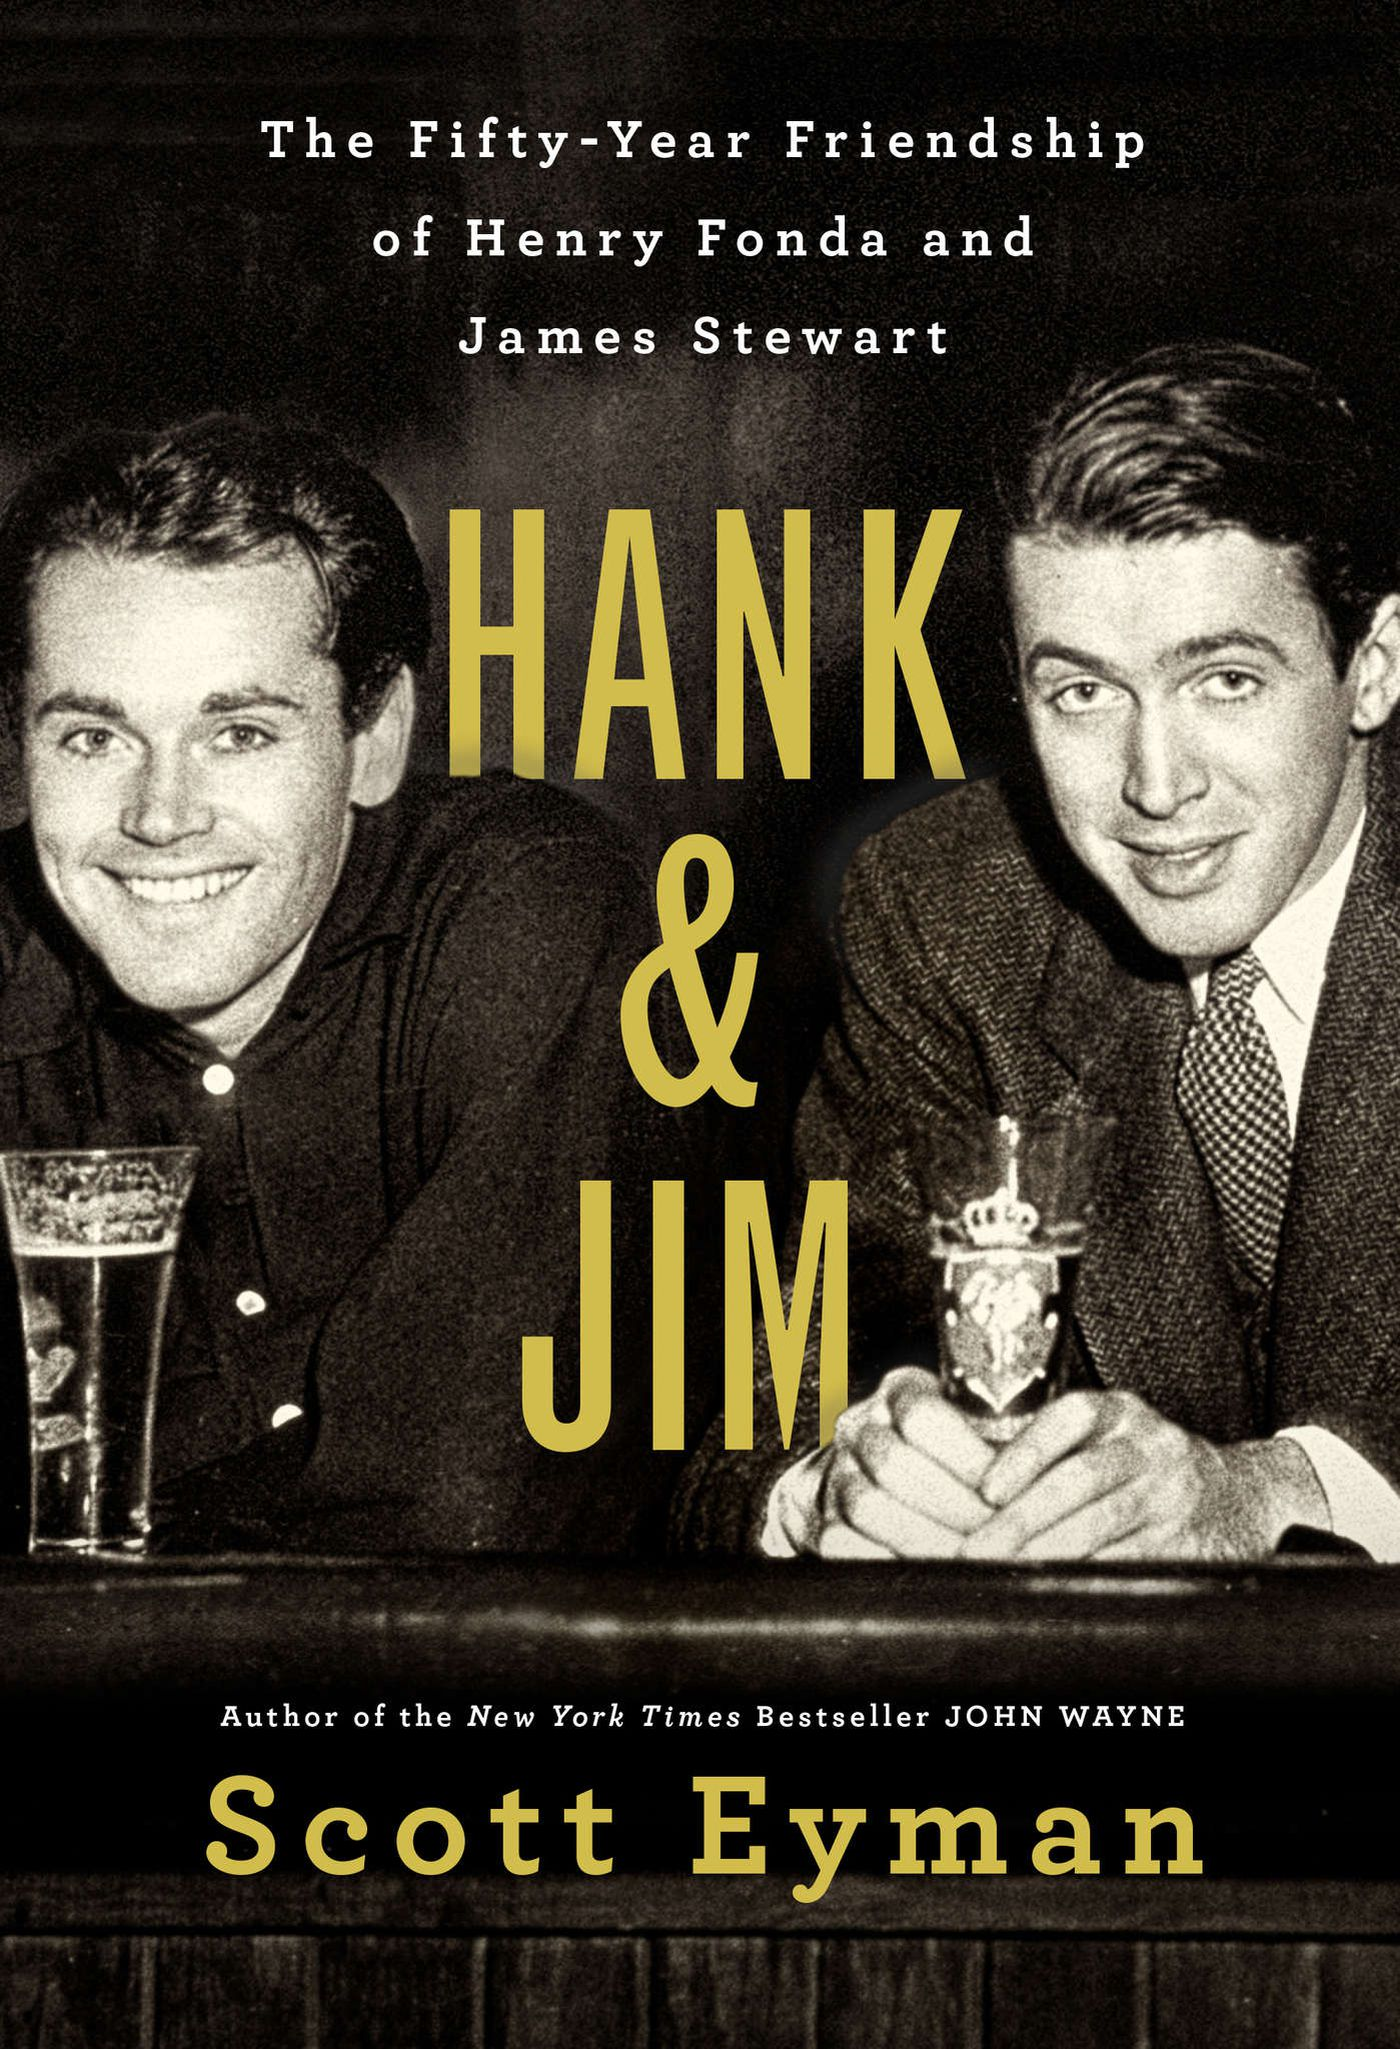 'Hank & Jim': Fonda and Stewart, together and apart